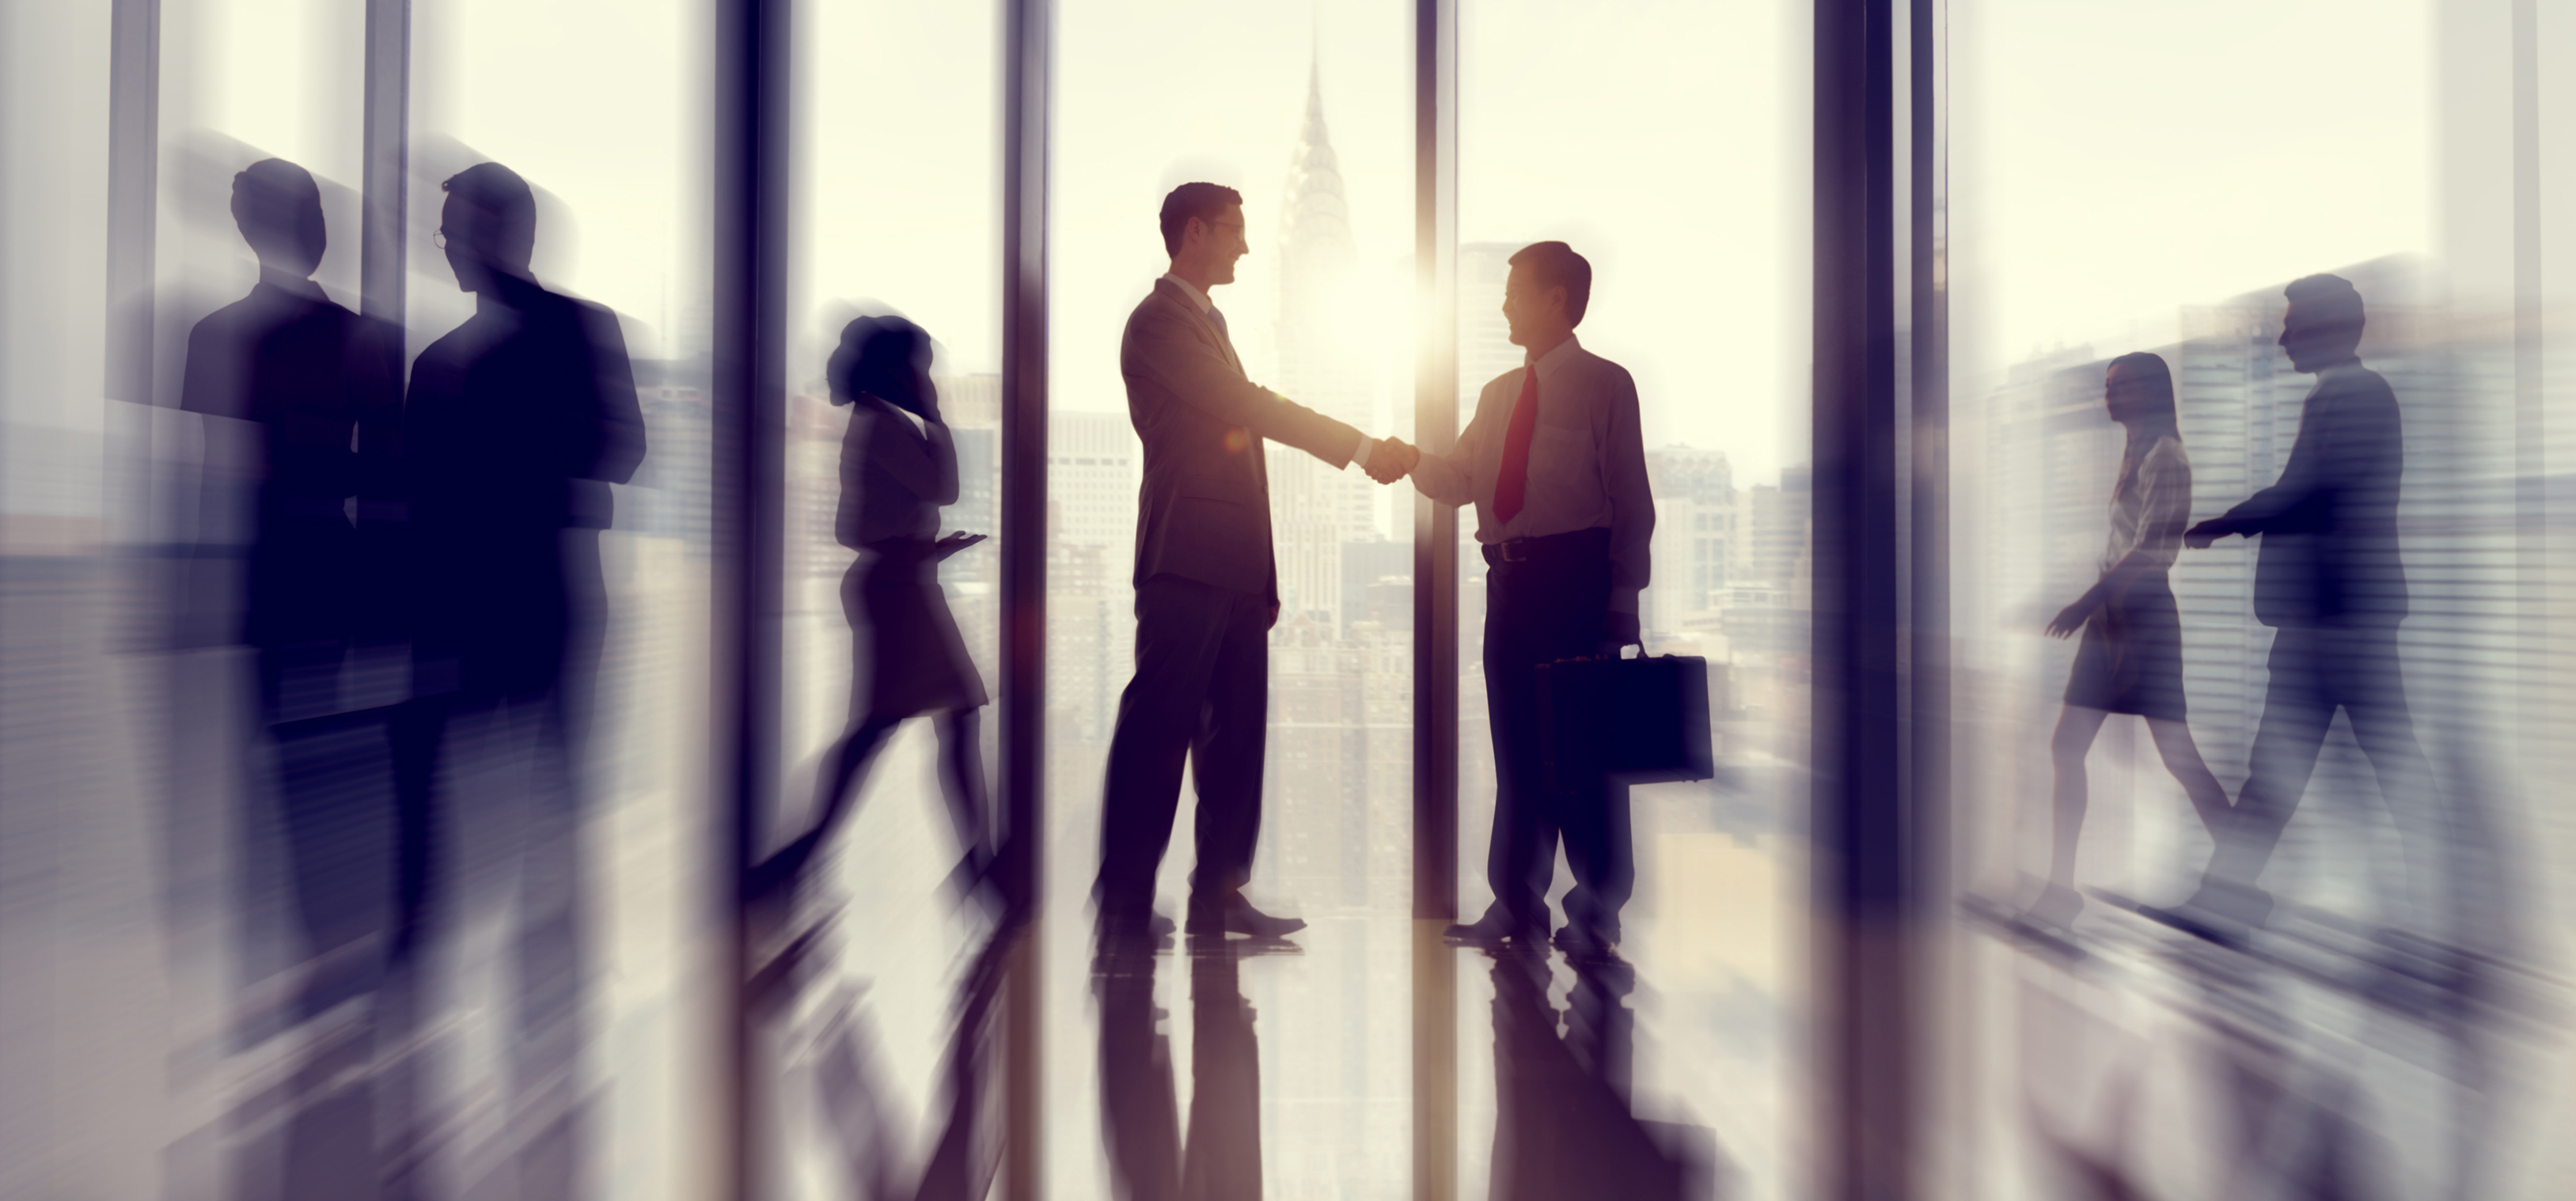 Group of business people in office building background image